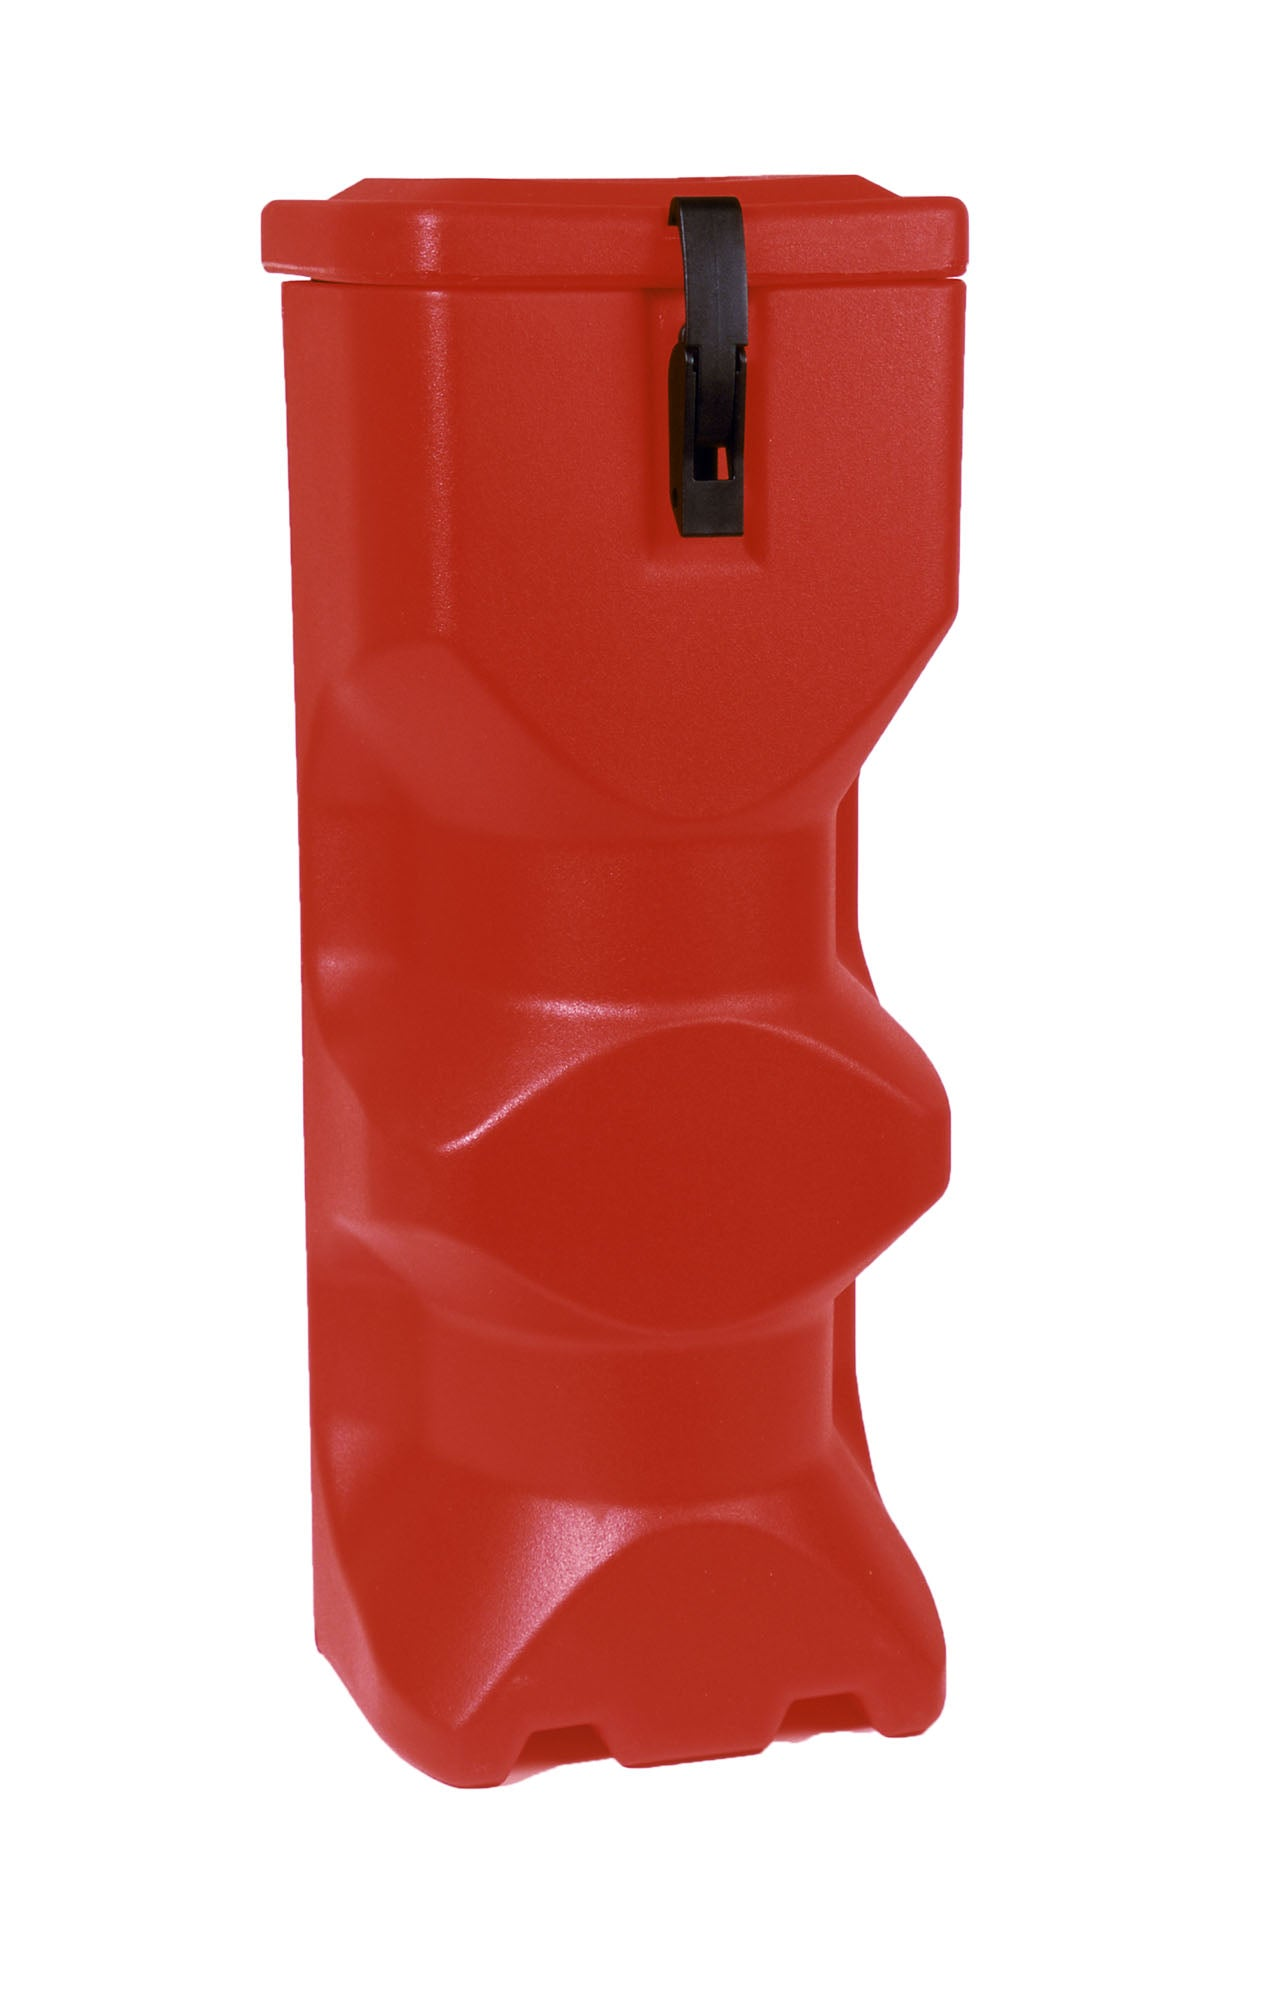 Vehicle Extinguisher Cabinet (6 Kg size) - Top Loading - HartsonFire